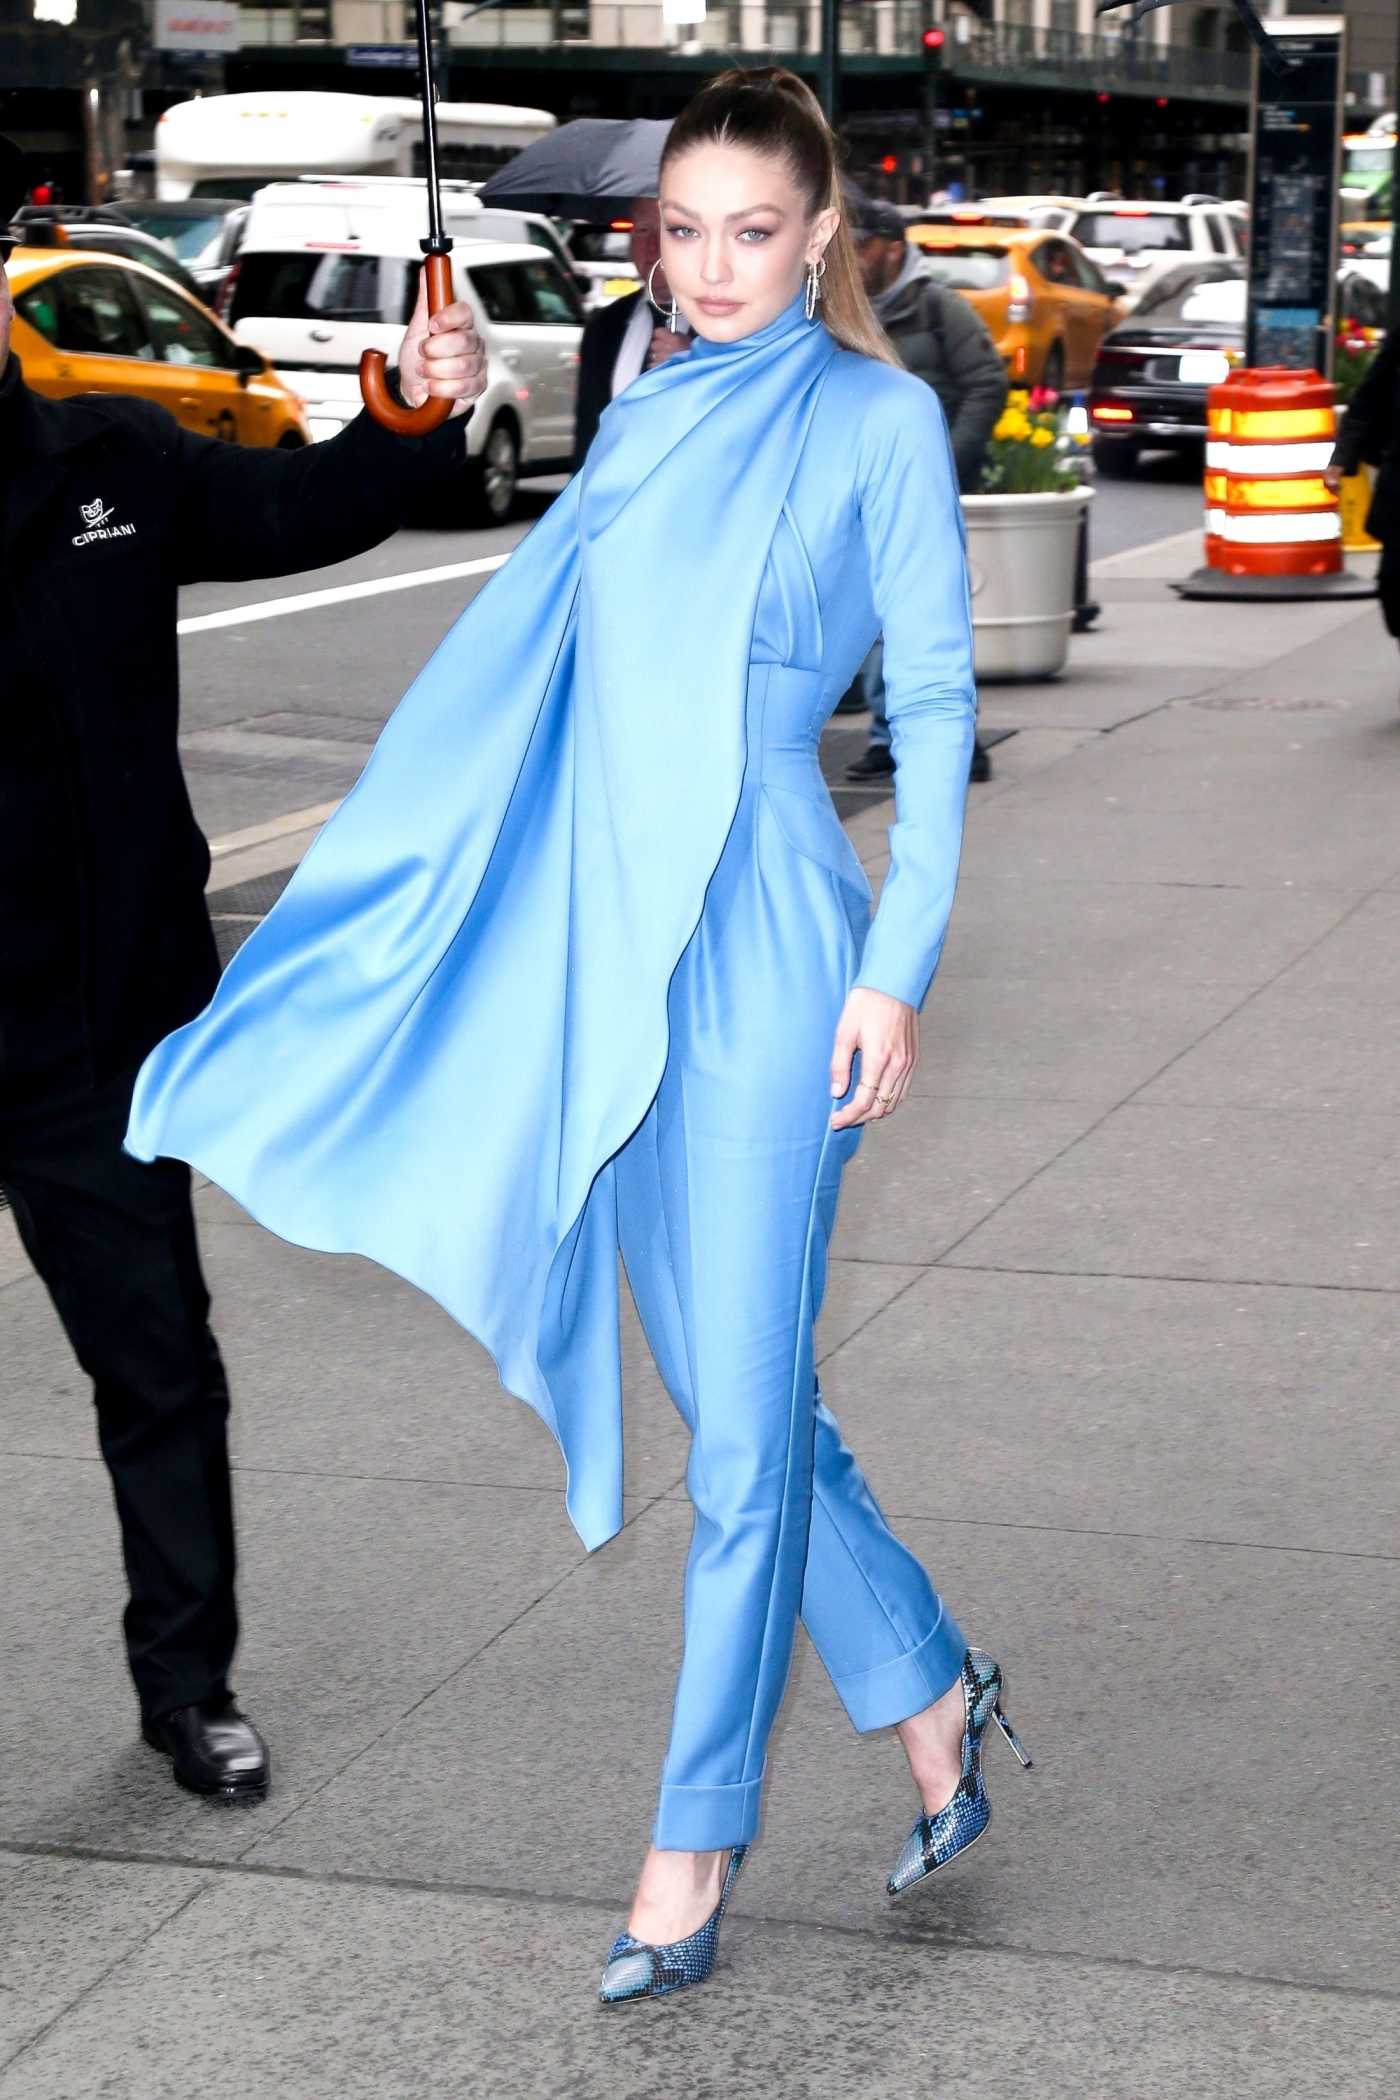 Gigi Hadid in a Blue Overalls Leaves 2019 Variety's Power of Women in NYC 04/05/2019